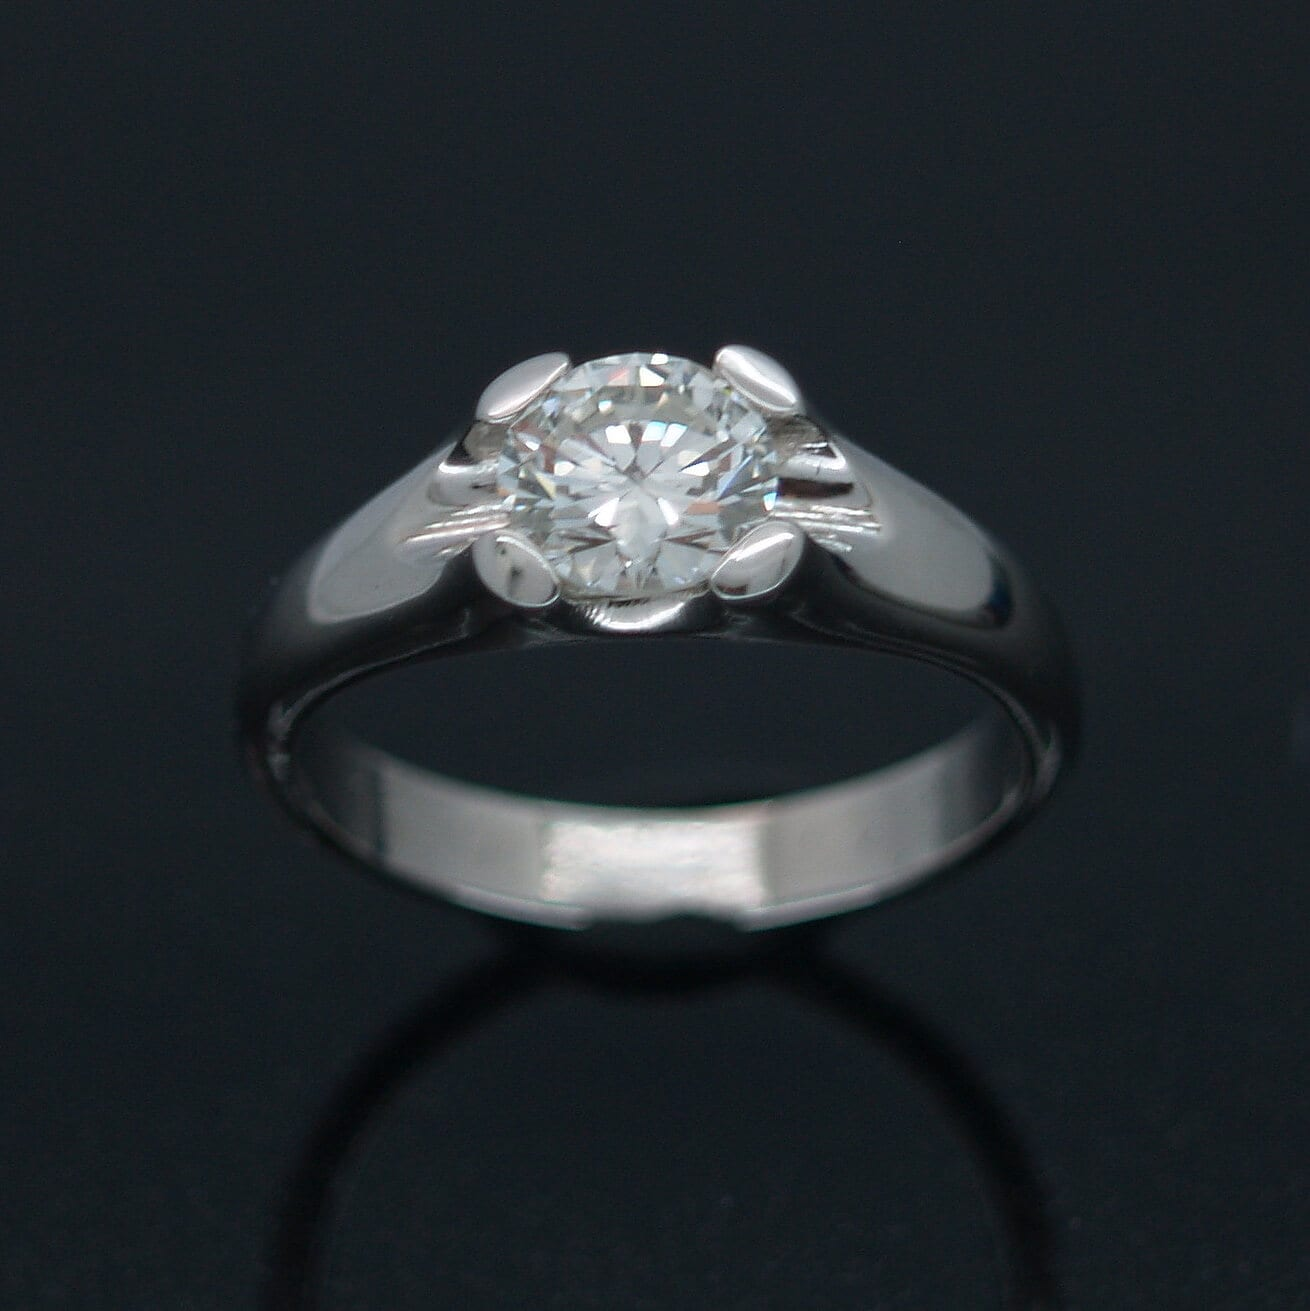 Modern Palladium and Round Brilliant cut Diamond bespoke engagement ring by Julian Stephens